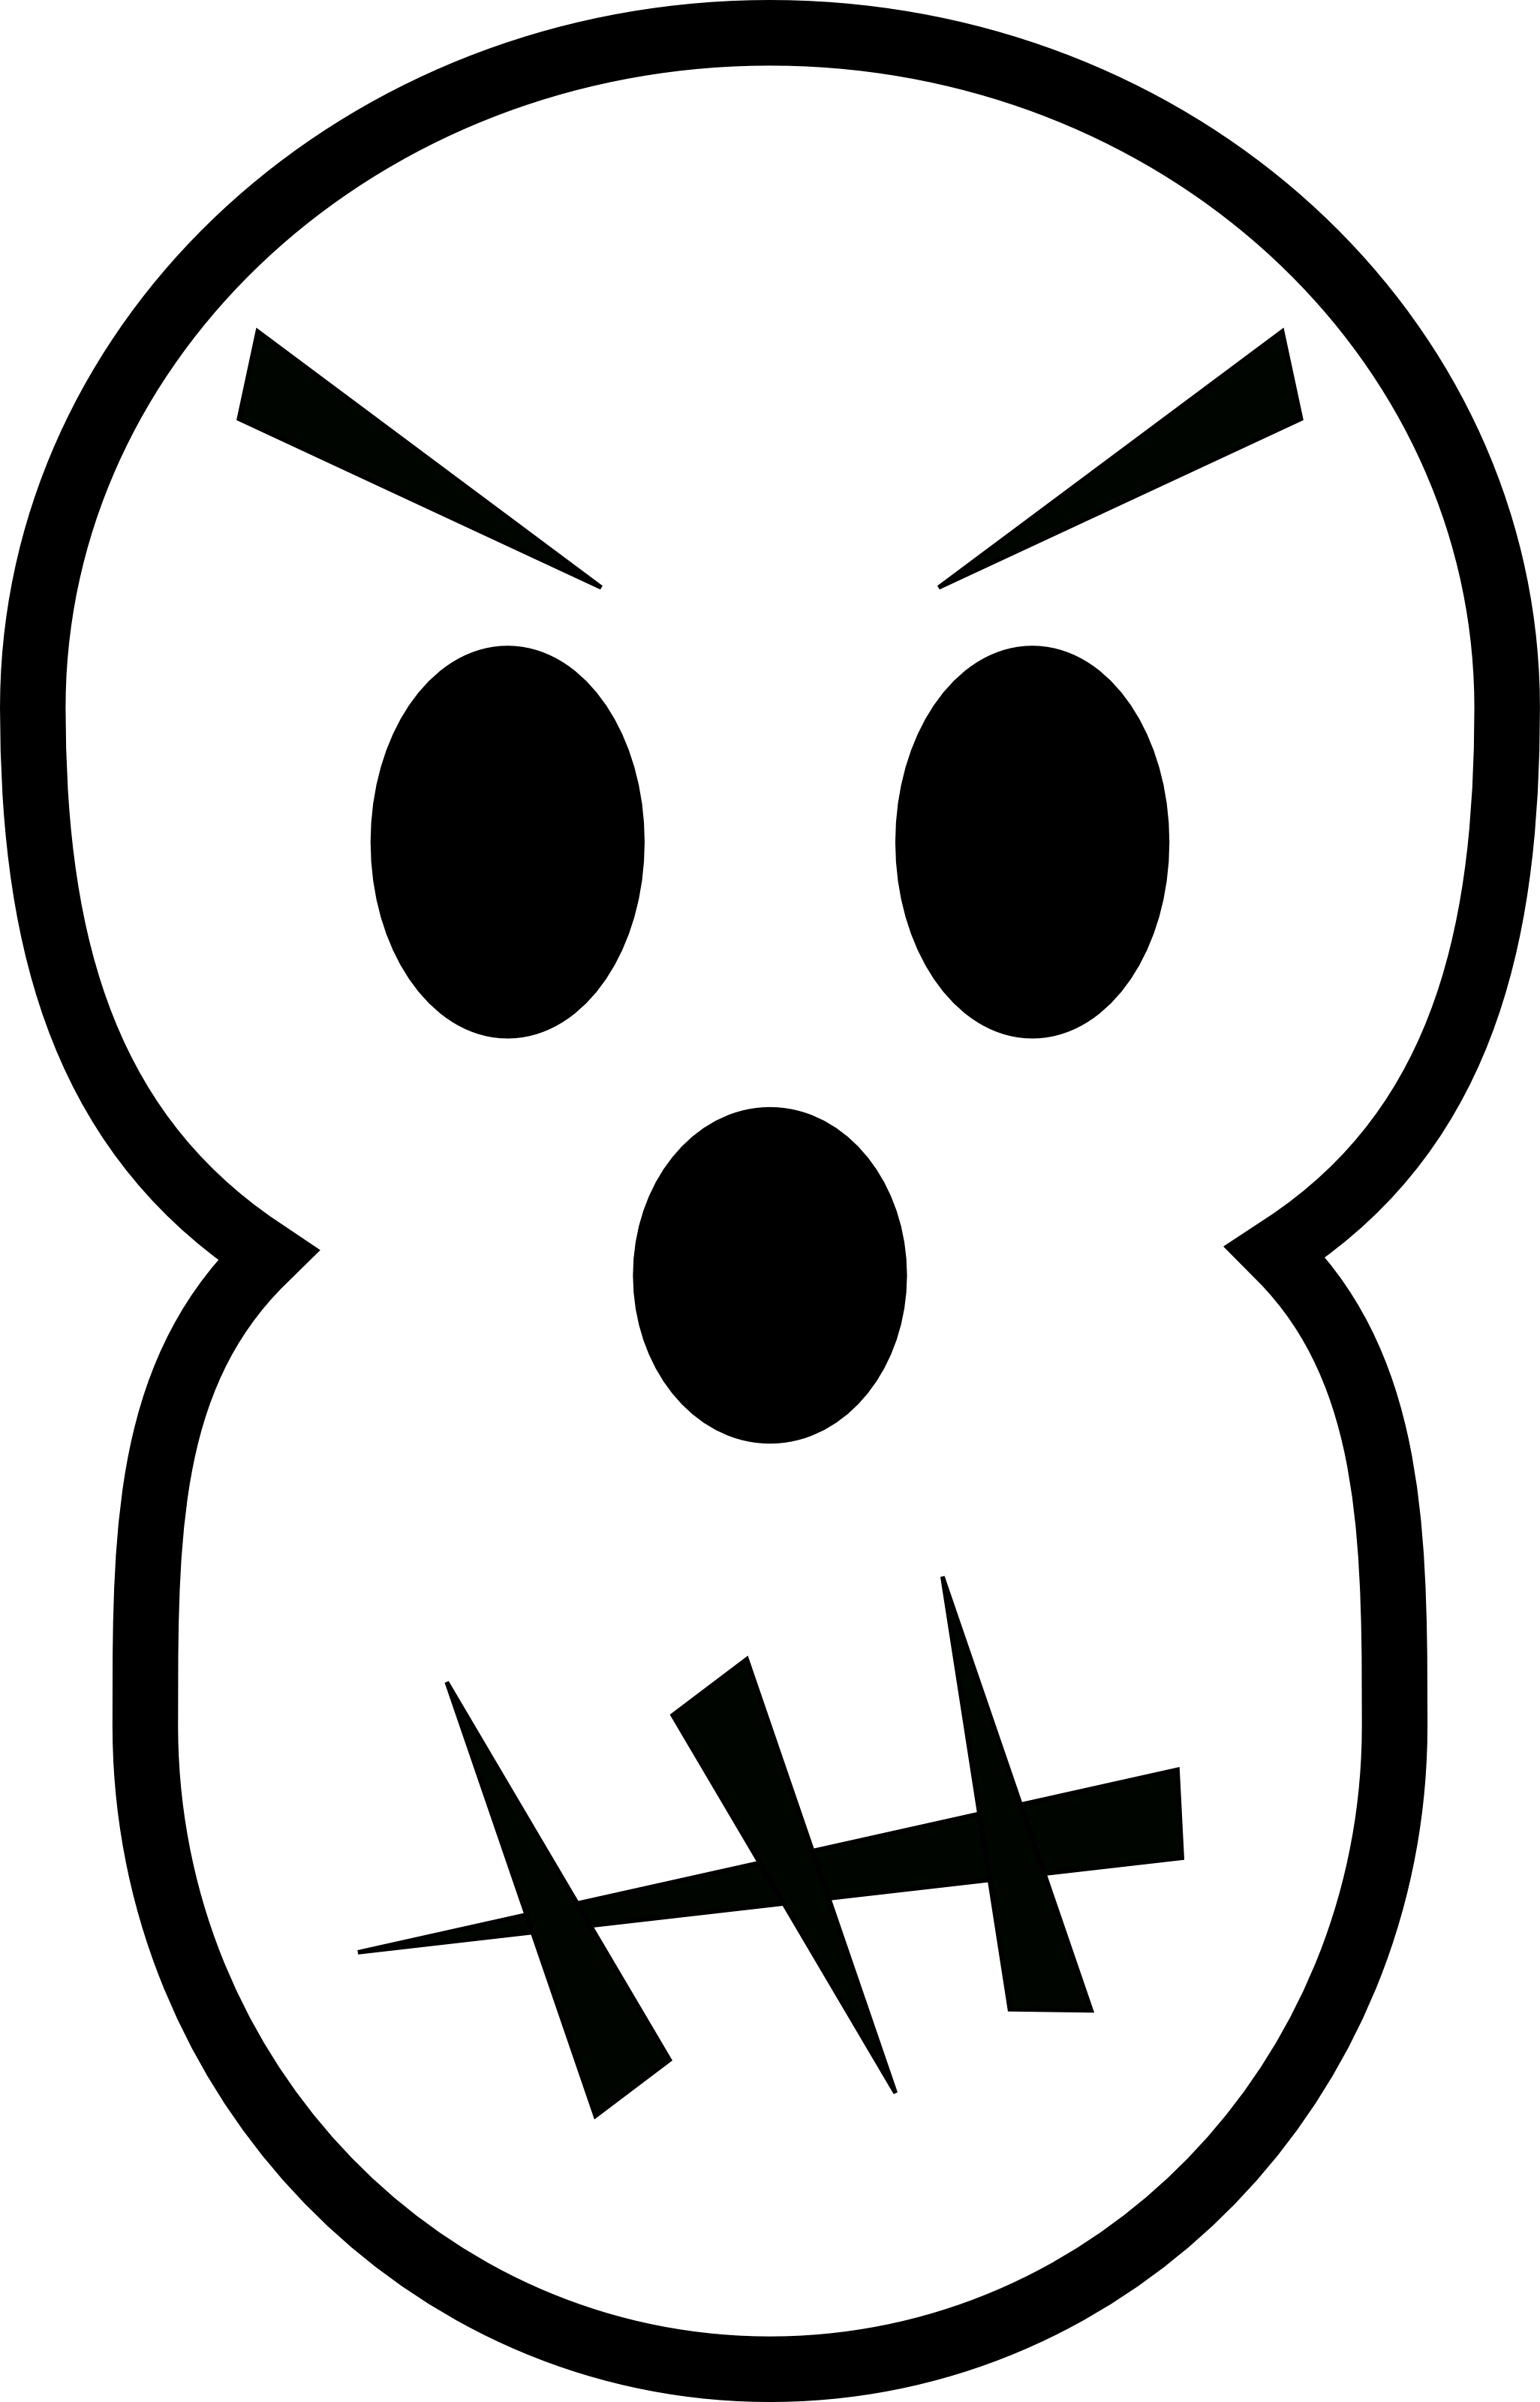 Halloween Bat Clipart Black And White Cl-Halloween Bat Clipart Black And White Clipart Panda Free Clipart-11